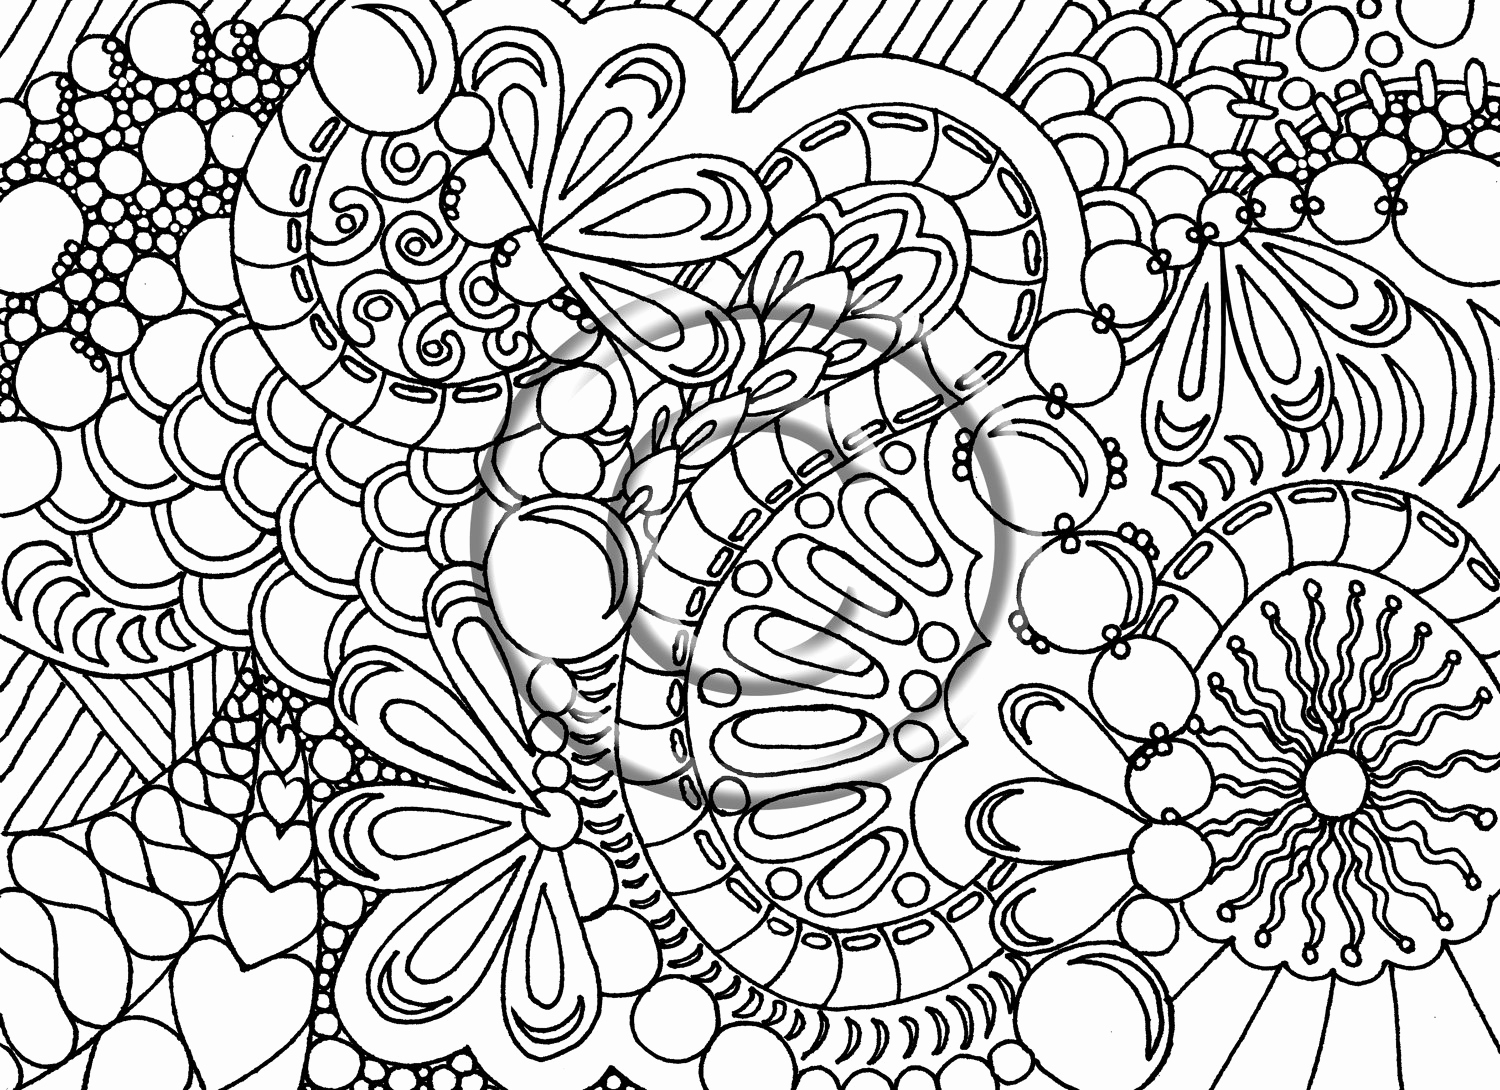 Abstract Design Coloring Pages Patterns Difficult Colouring Pages ...